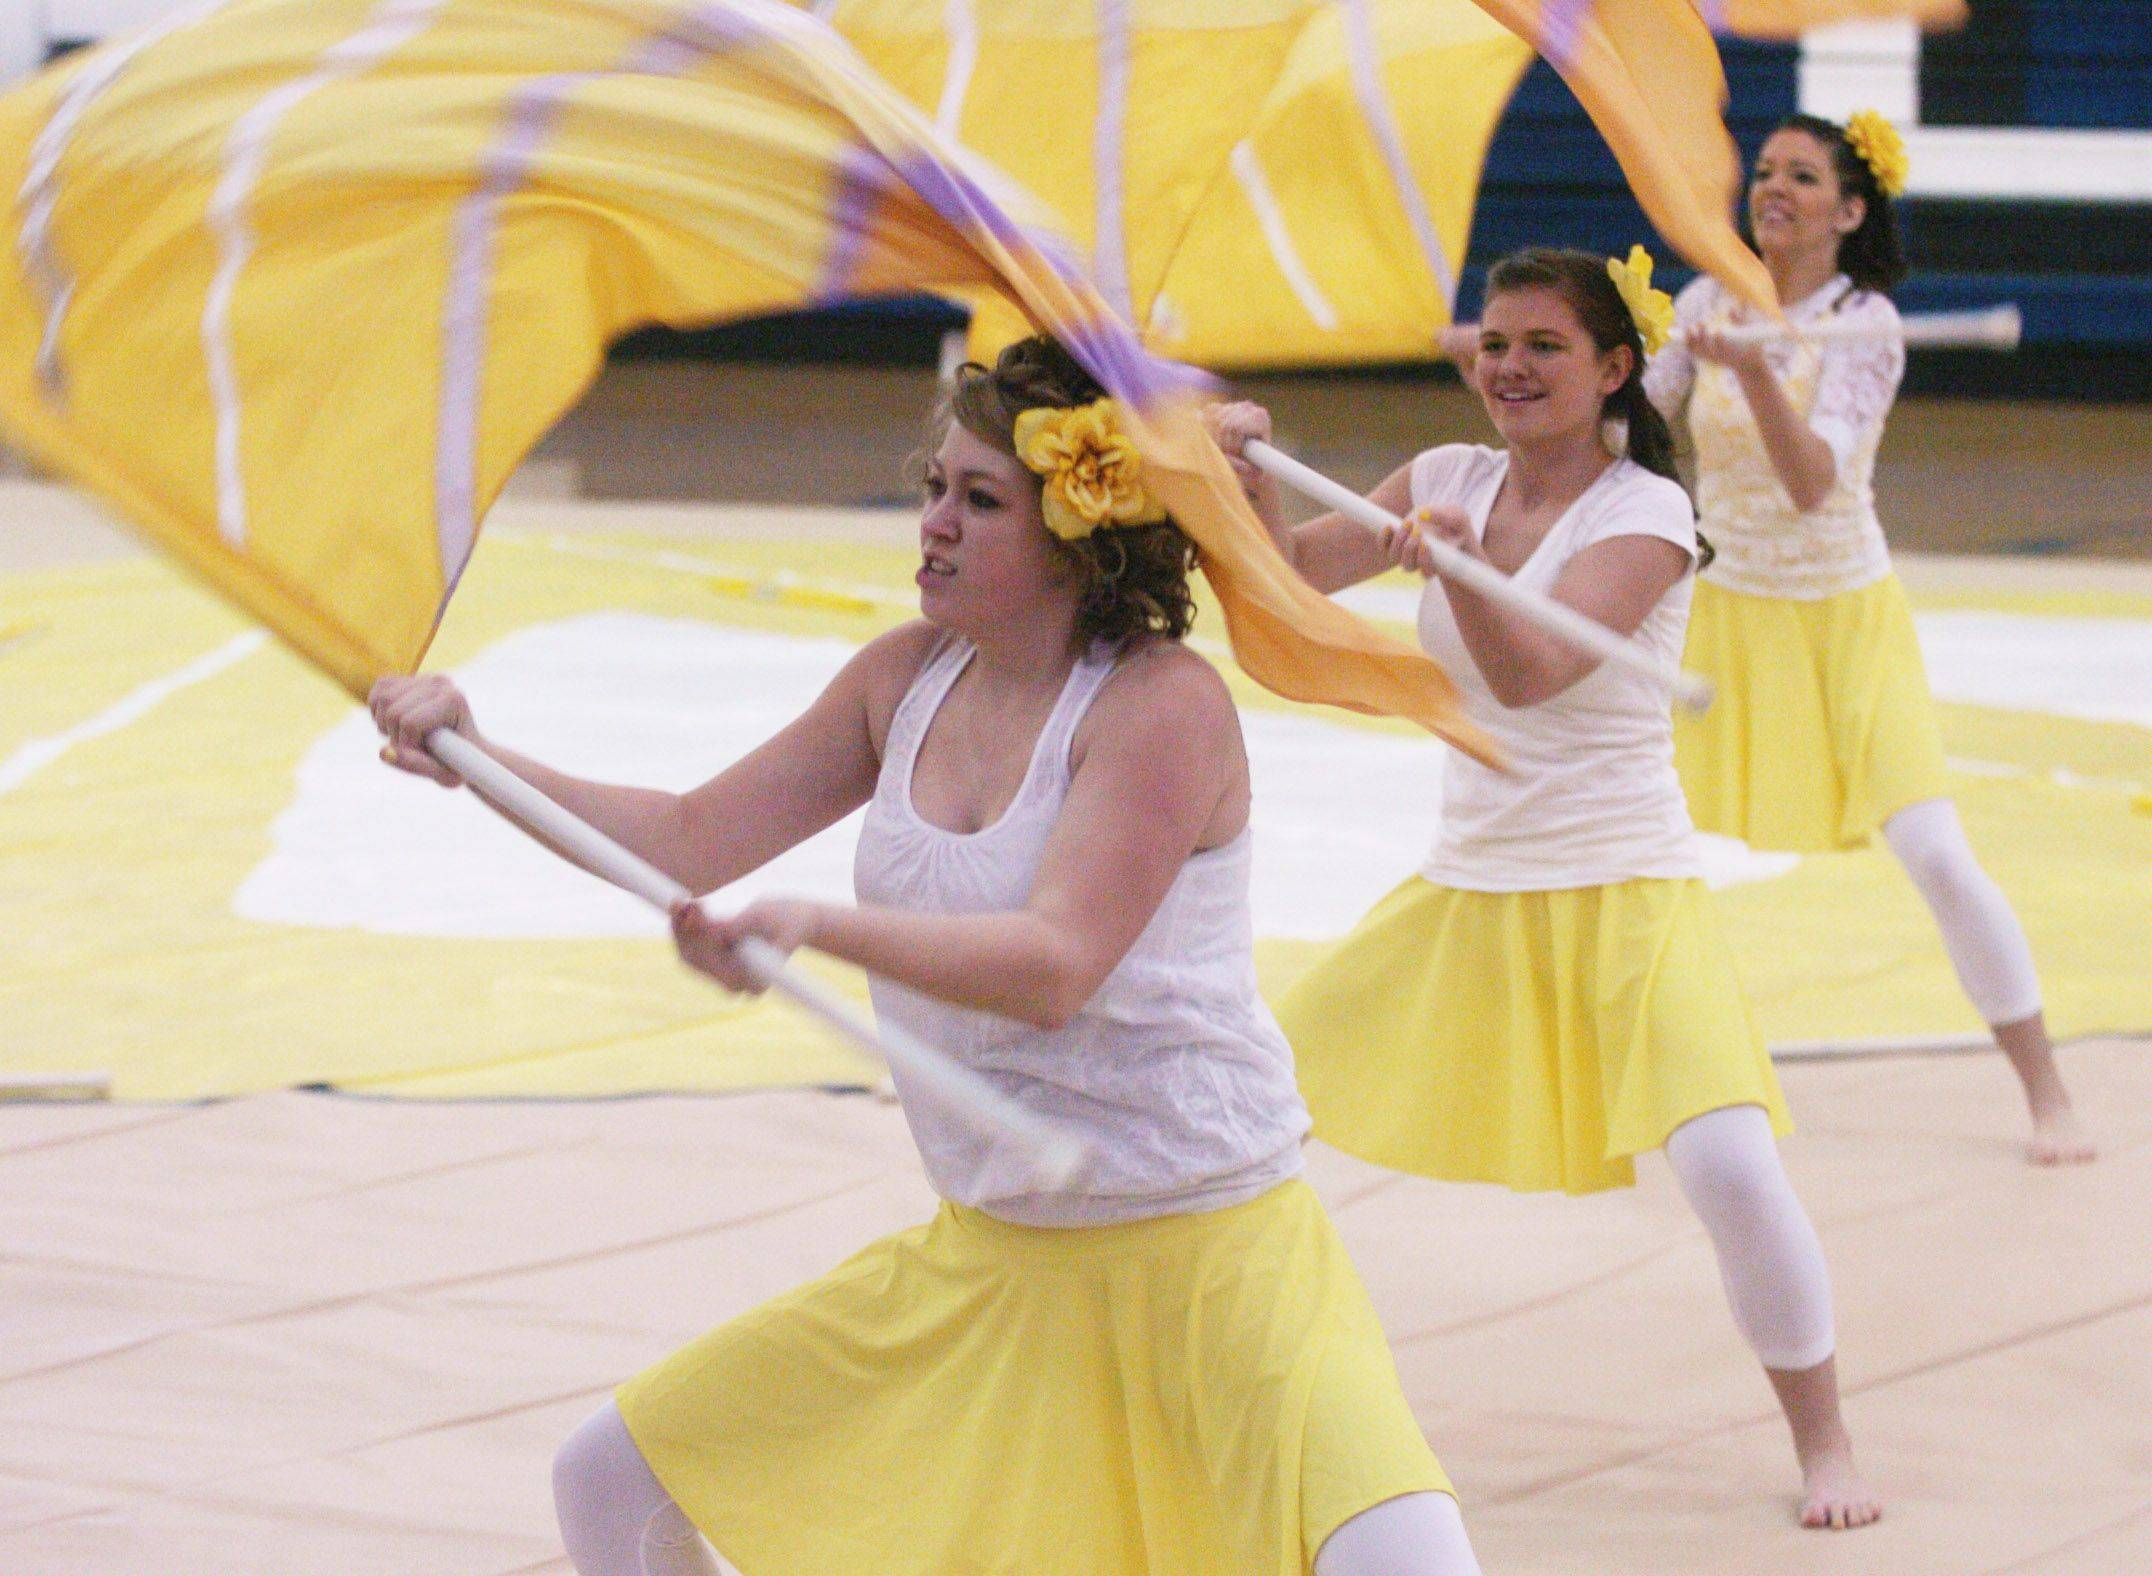 The team from Jacobs High School competes Saturday during the Midwest Color Guard Circuit Contest at Lake Park High School's West Campus in Roselle.